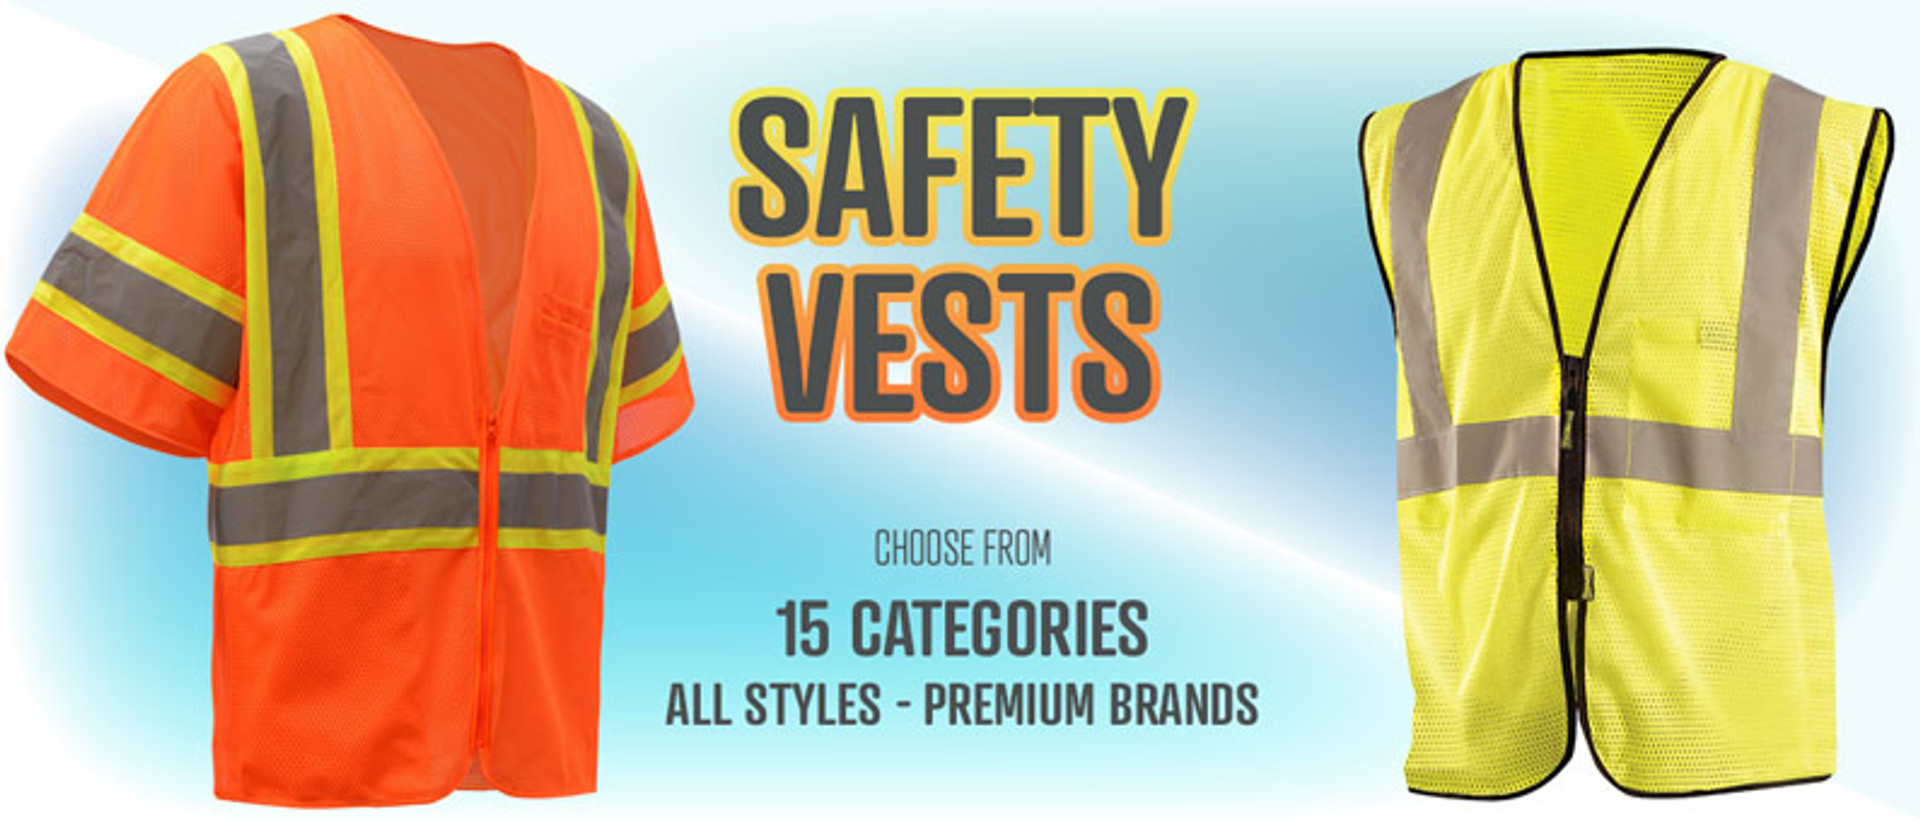 Safety Vests - 15 Categories of Styles